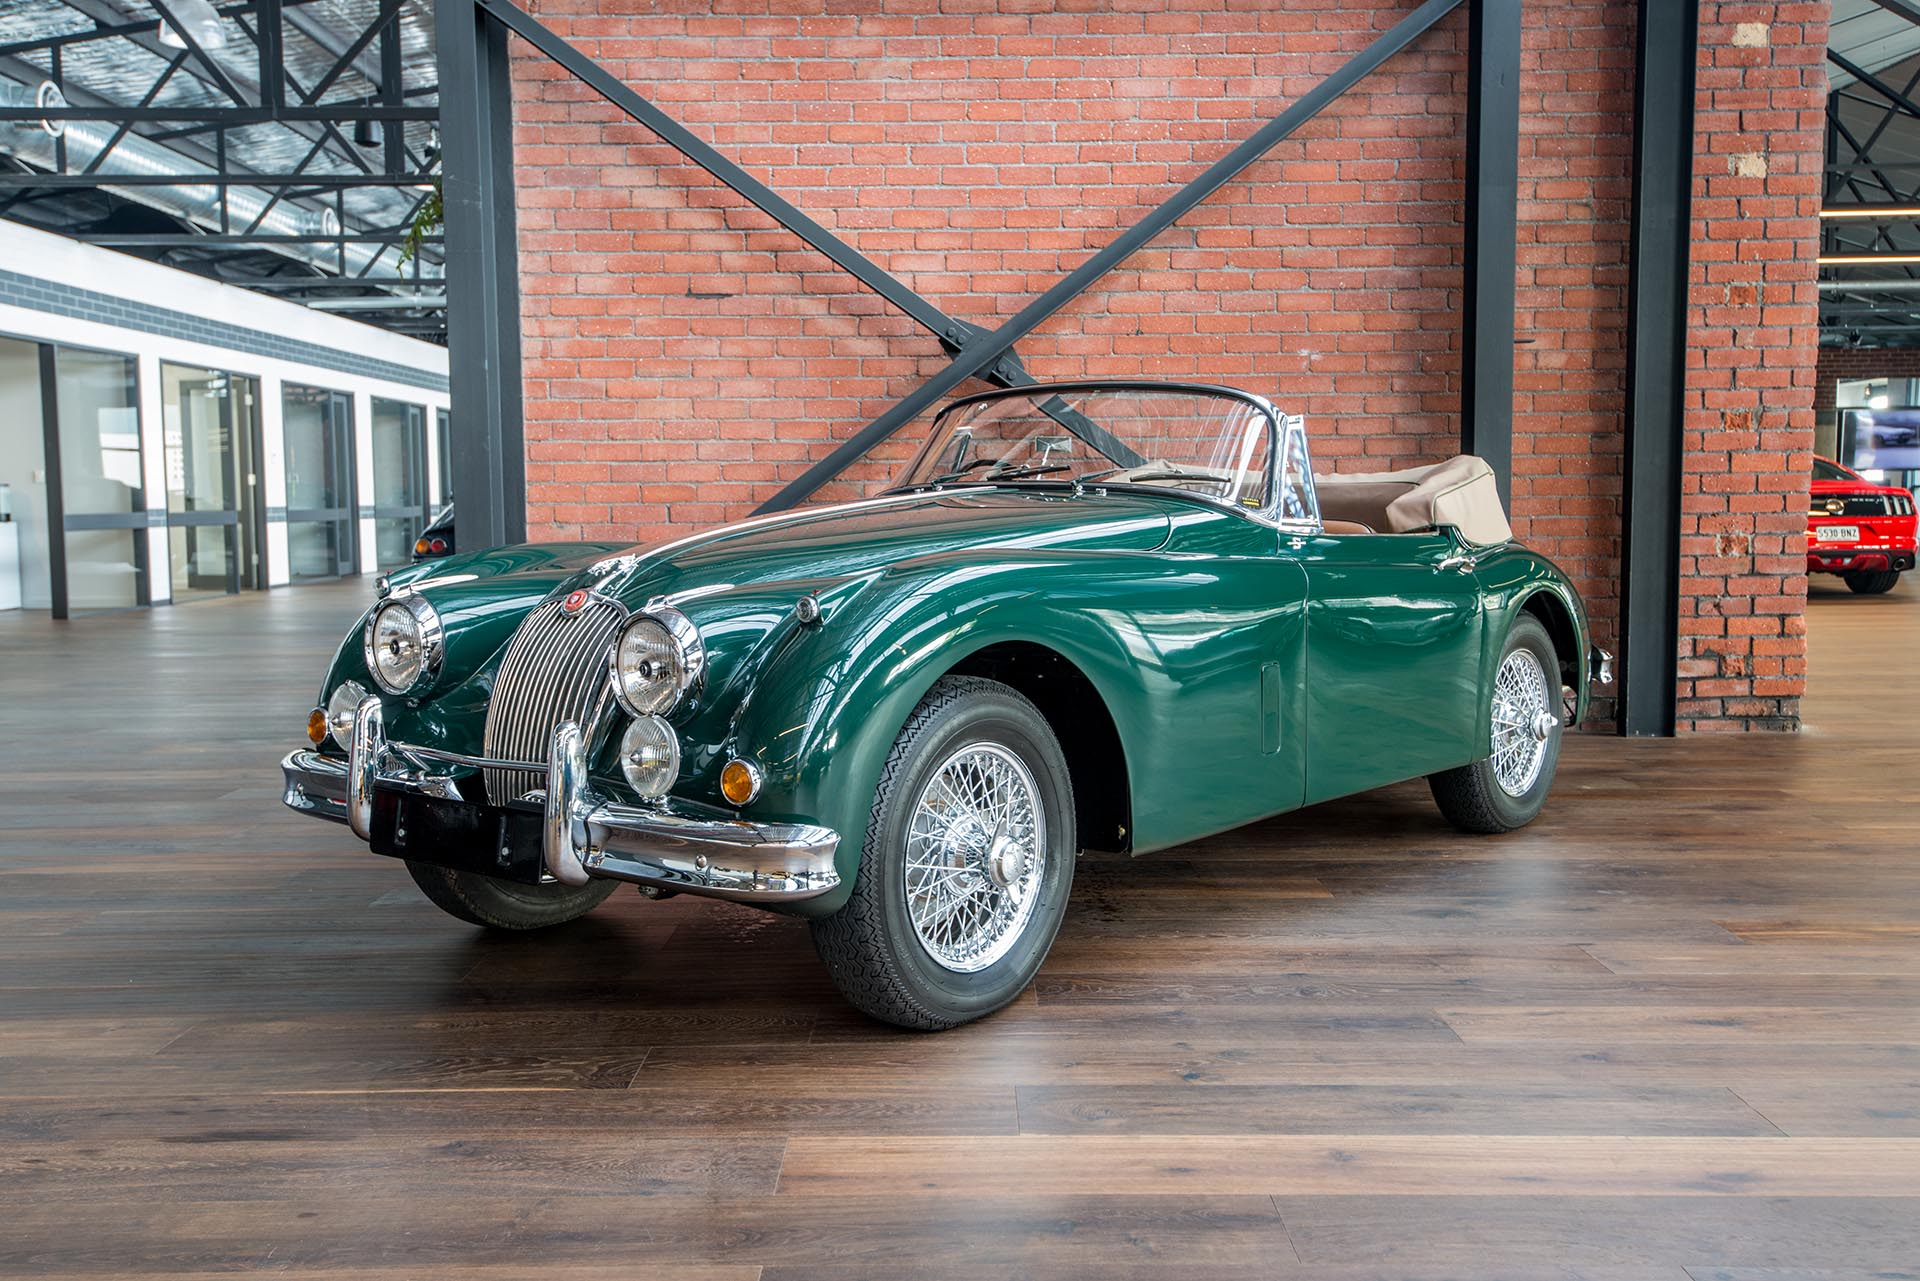 1959 jaguar xk150 s drophead coupe - richmonds - classic and prestige cars